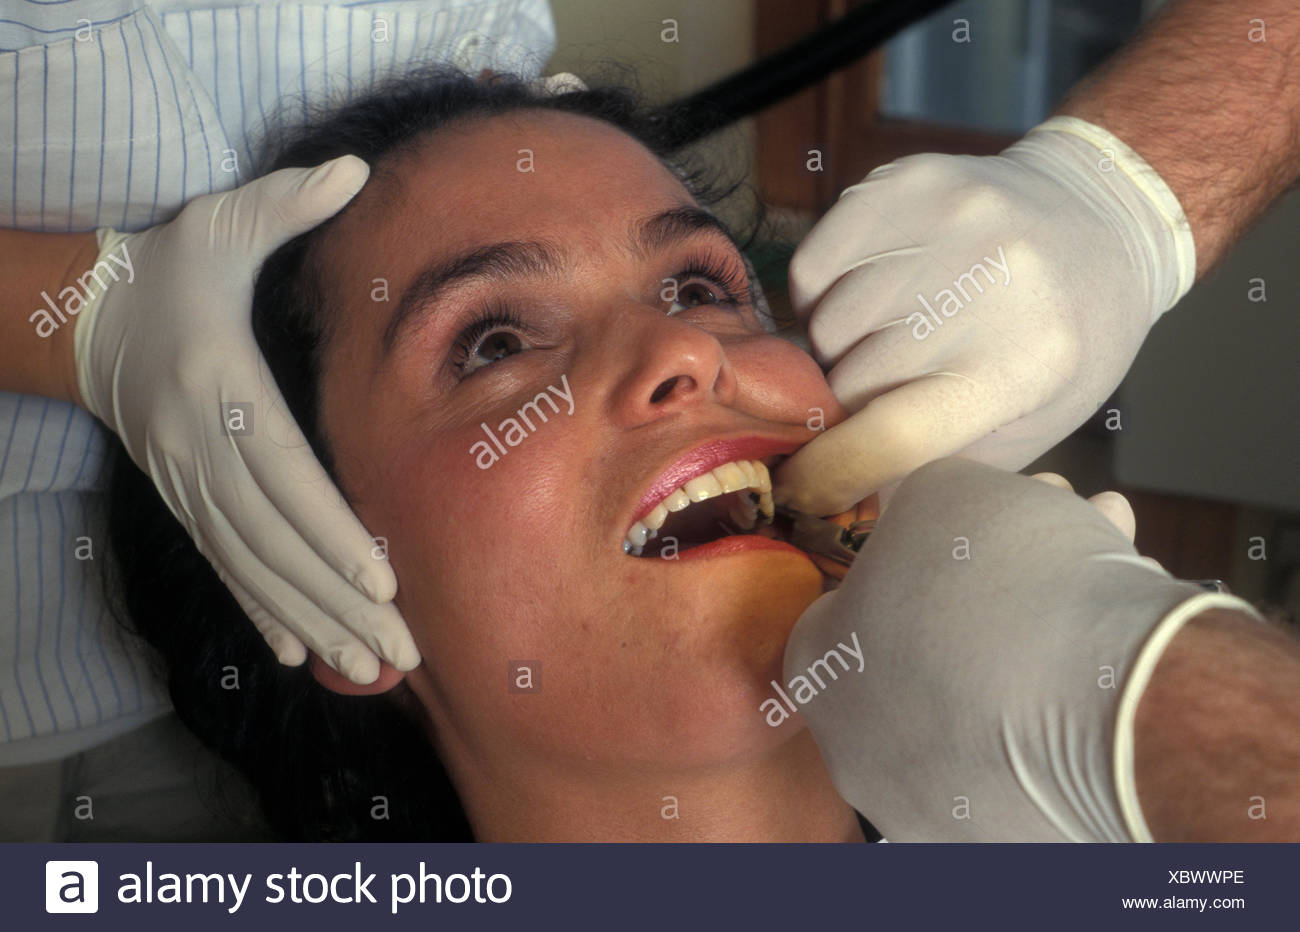 Les anglo-israélienne au dentiste d'avoir une extraction dentaire Photo Stock